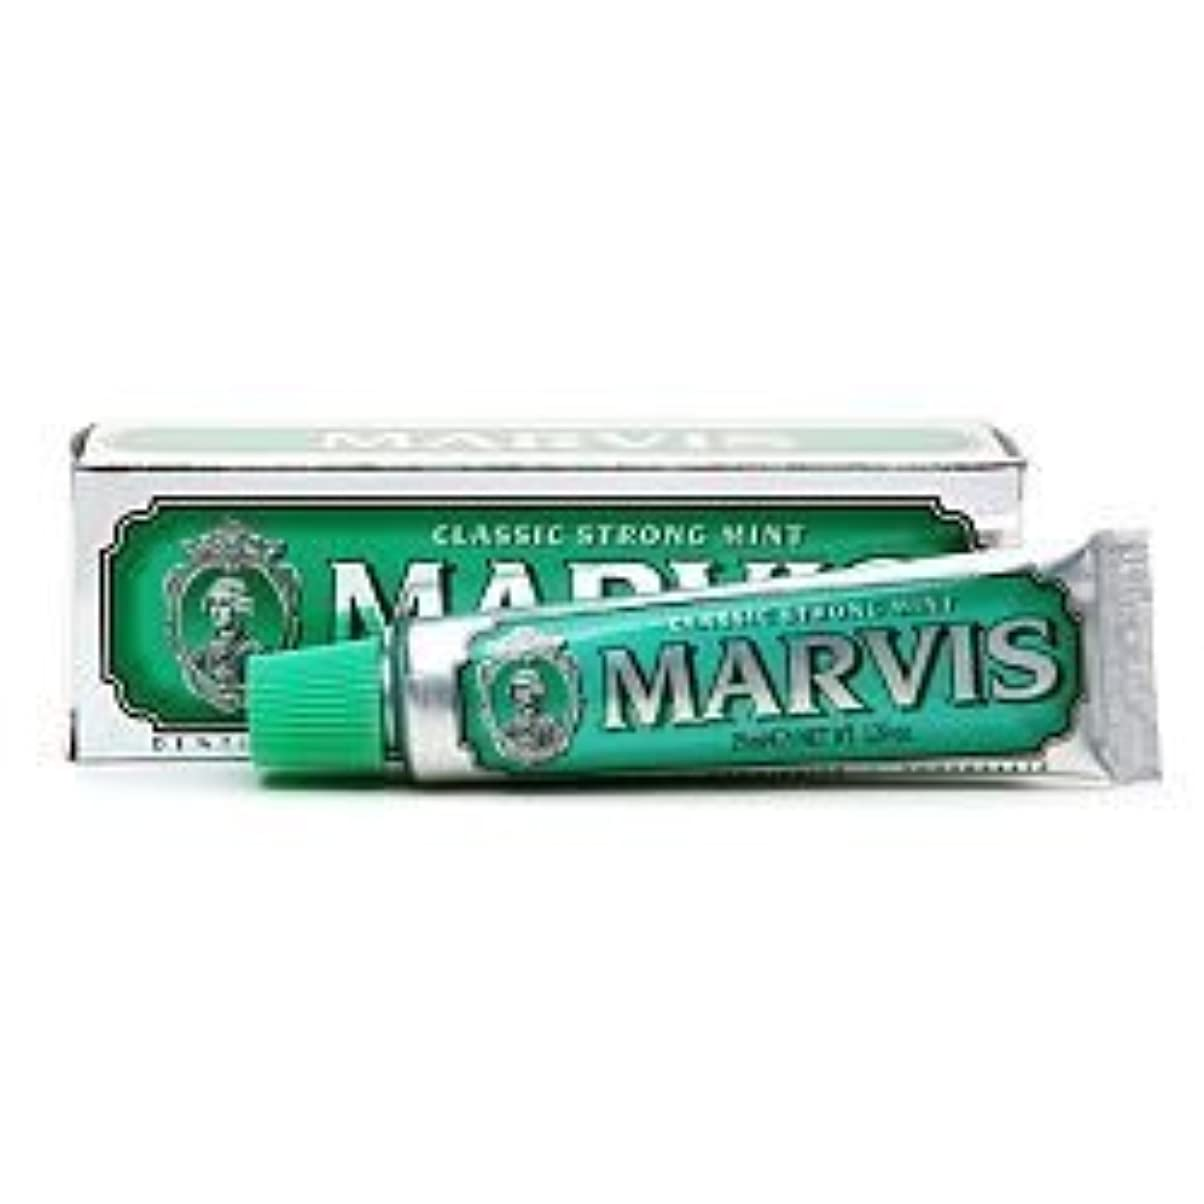 ジャンル経験者キャベツMarvis Travel Sized Toothpaste, Classic Strong Mint 1.29 oz (25 ml) (Qunatity of 4) by Marvis [並行輸入品]